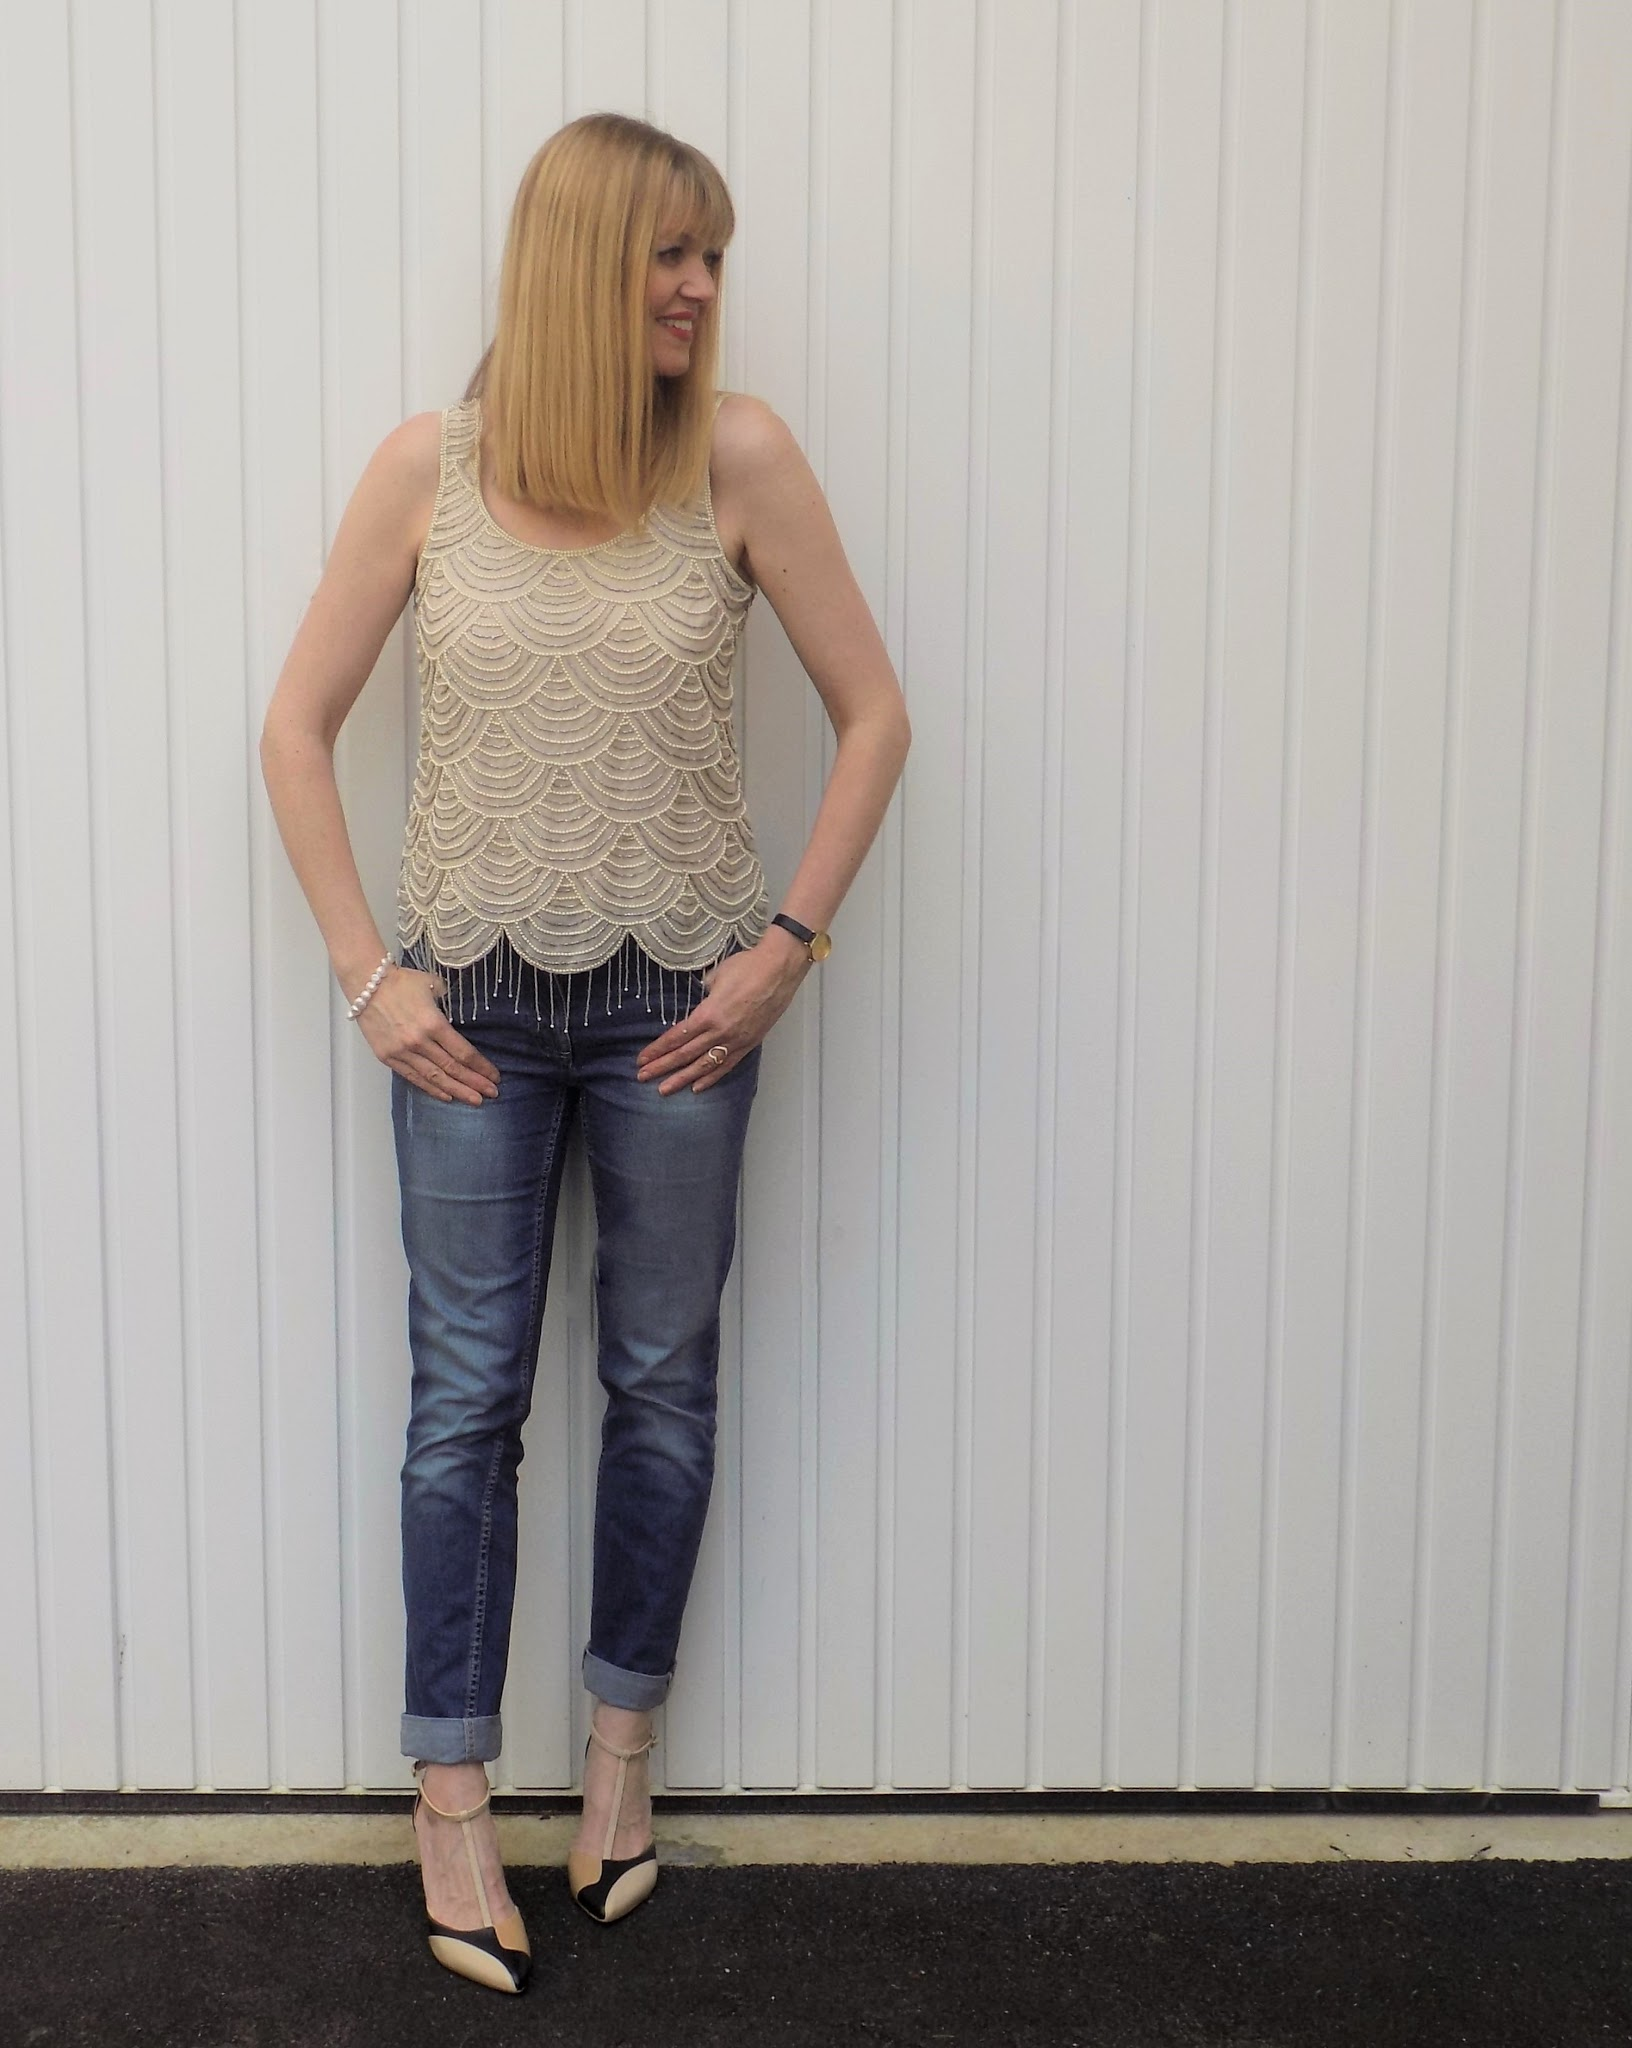 Beaded Gatsby style top with boyfit jeans and Kaleidoscope colourblock shoes